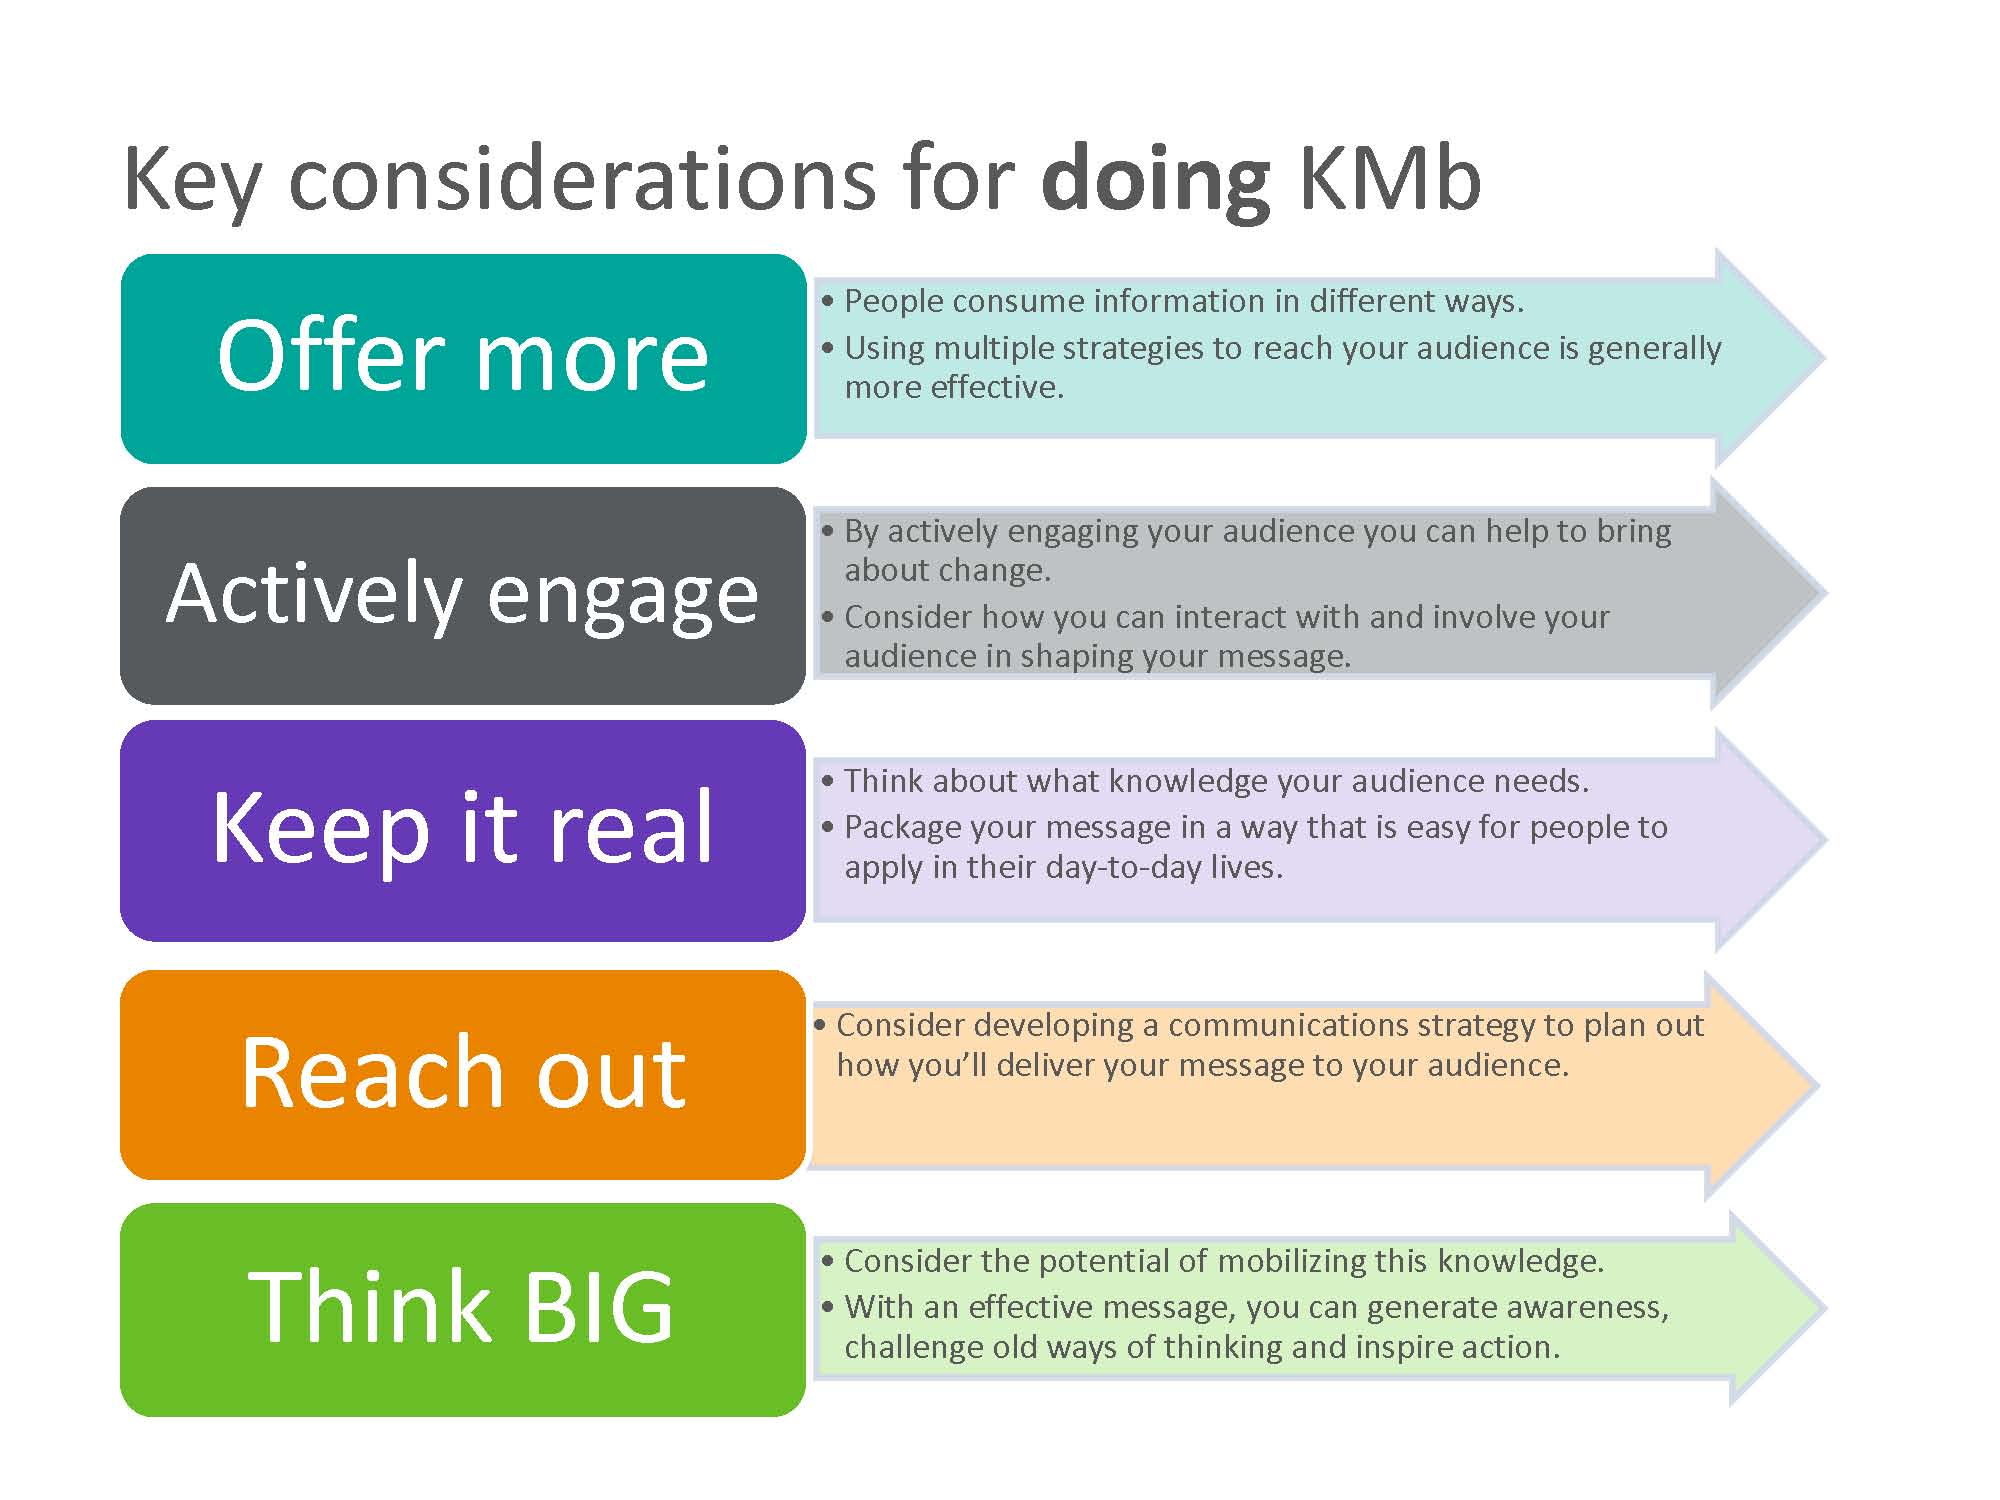 Key considerations for doing KMb